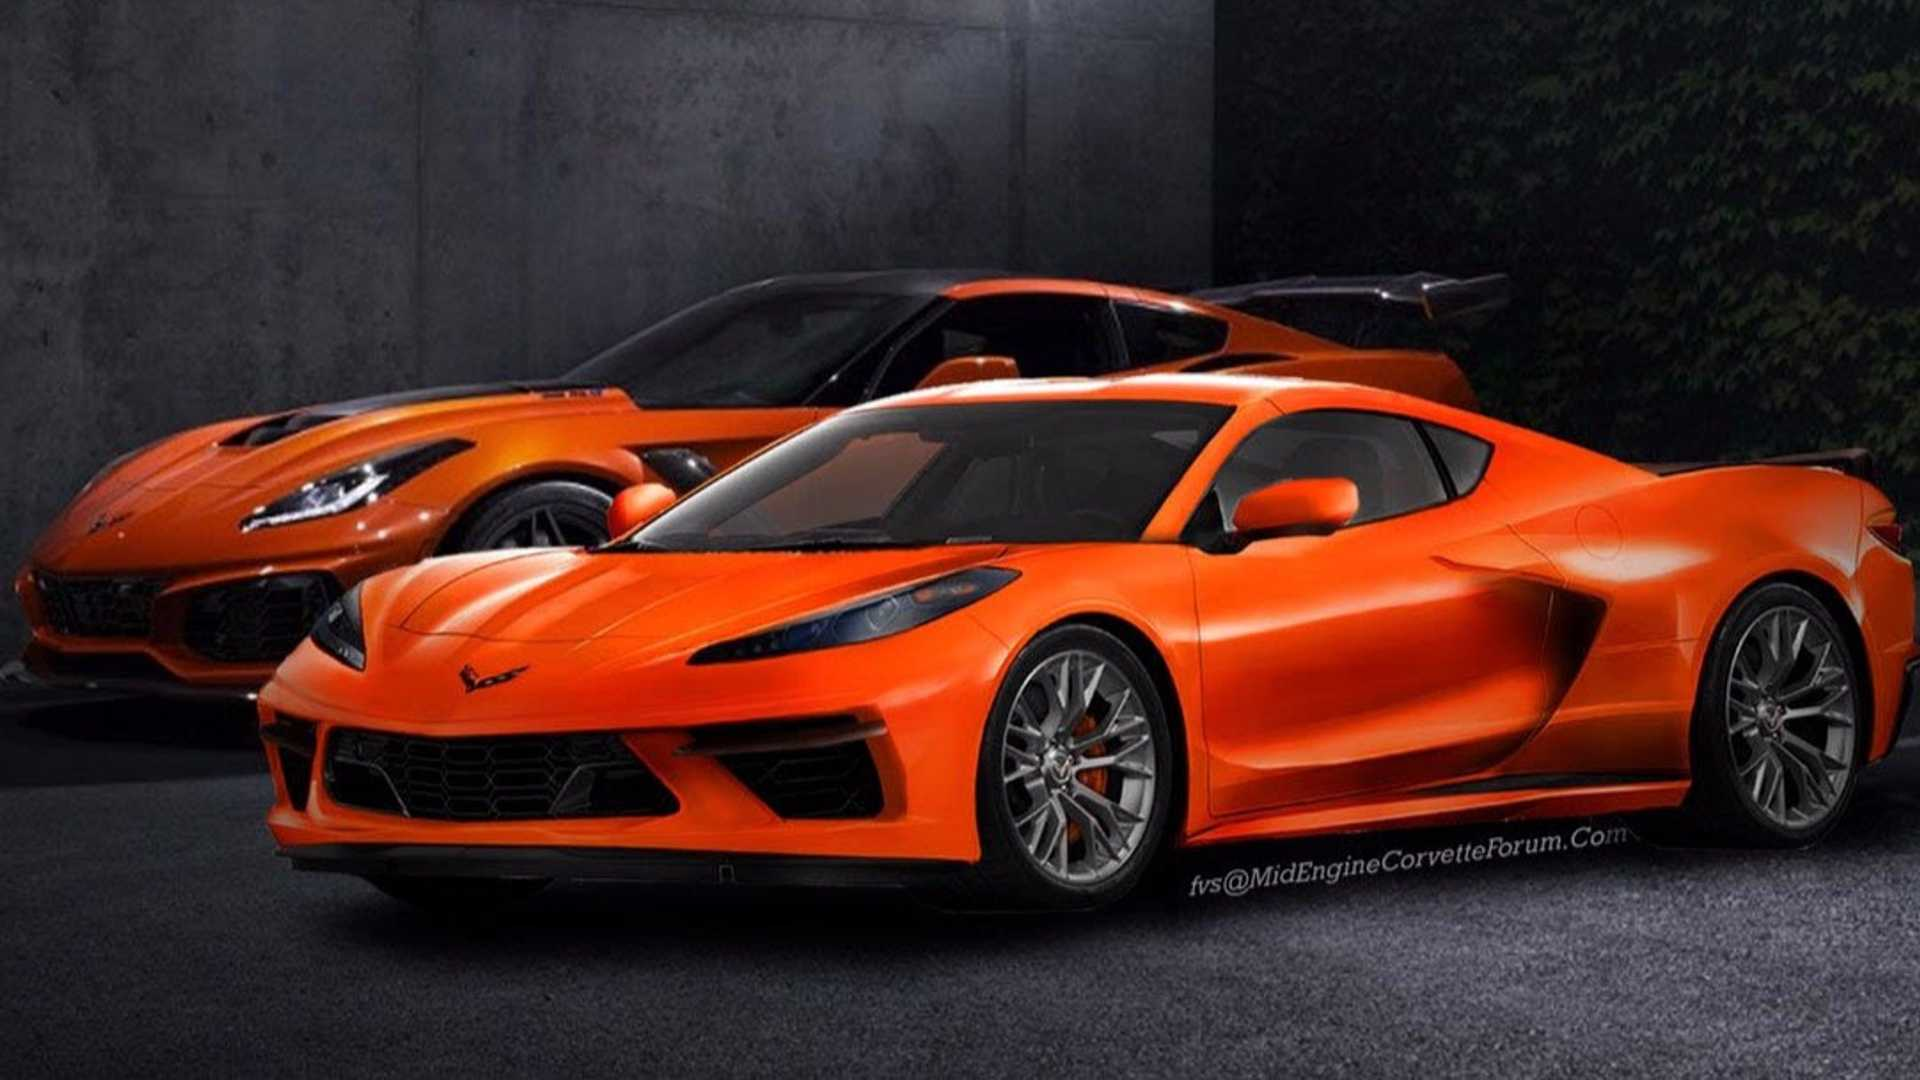 22 New 2020 Chevrolet Corvette Z06 Specs and Review with 2020 Chevrolet Corvette Z06